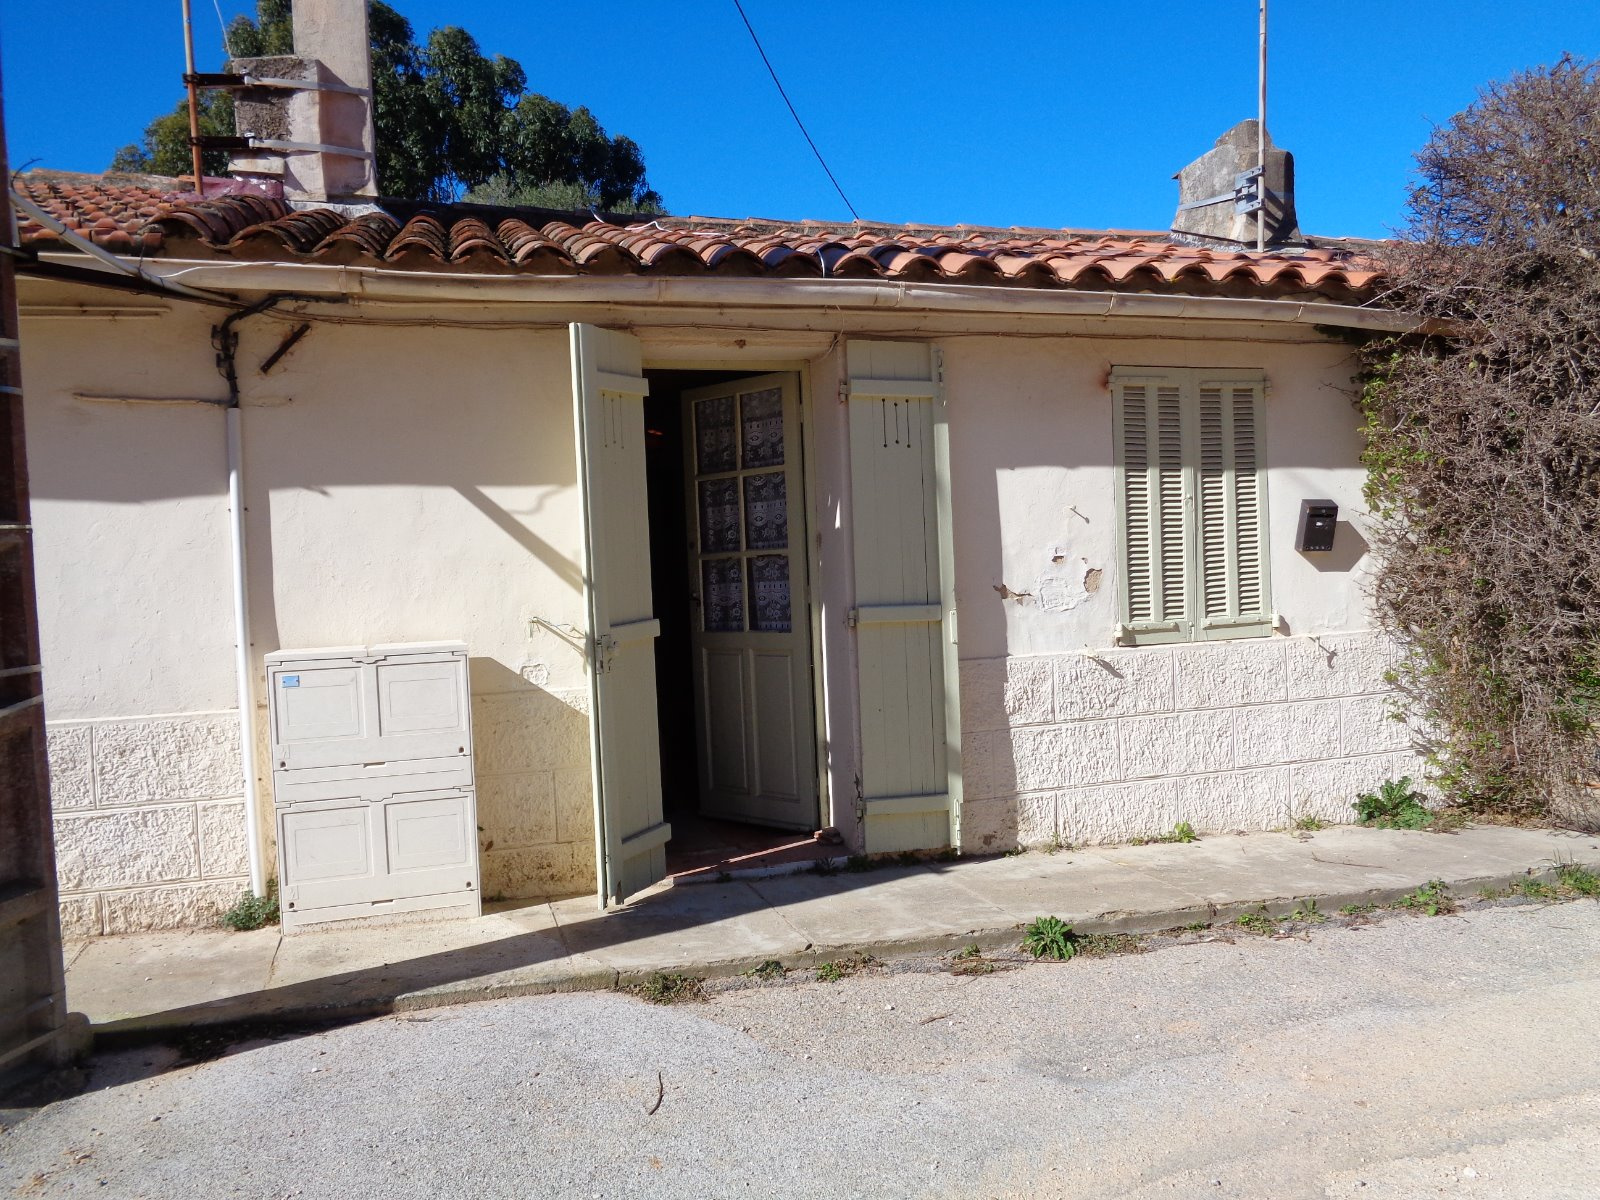 Vente maison a porquerolles exclusivite vendu for Immobilier maison